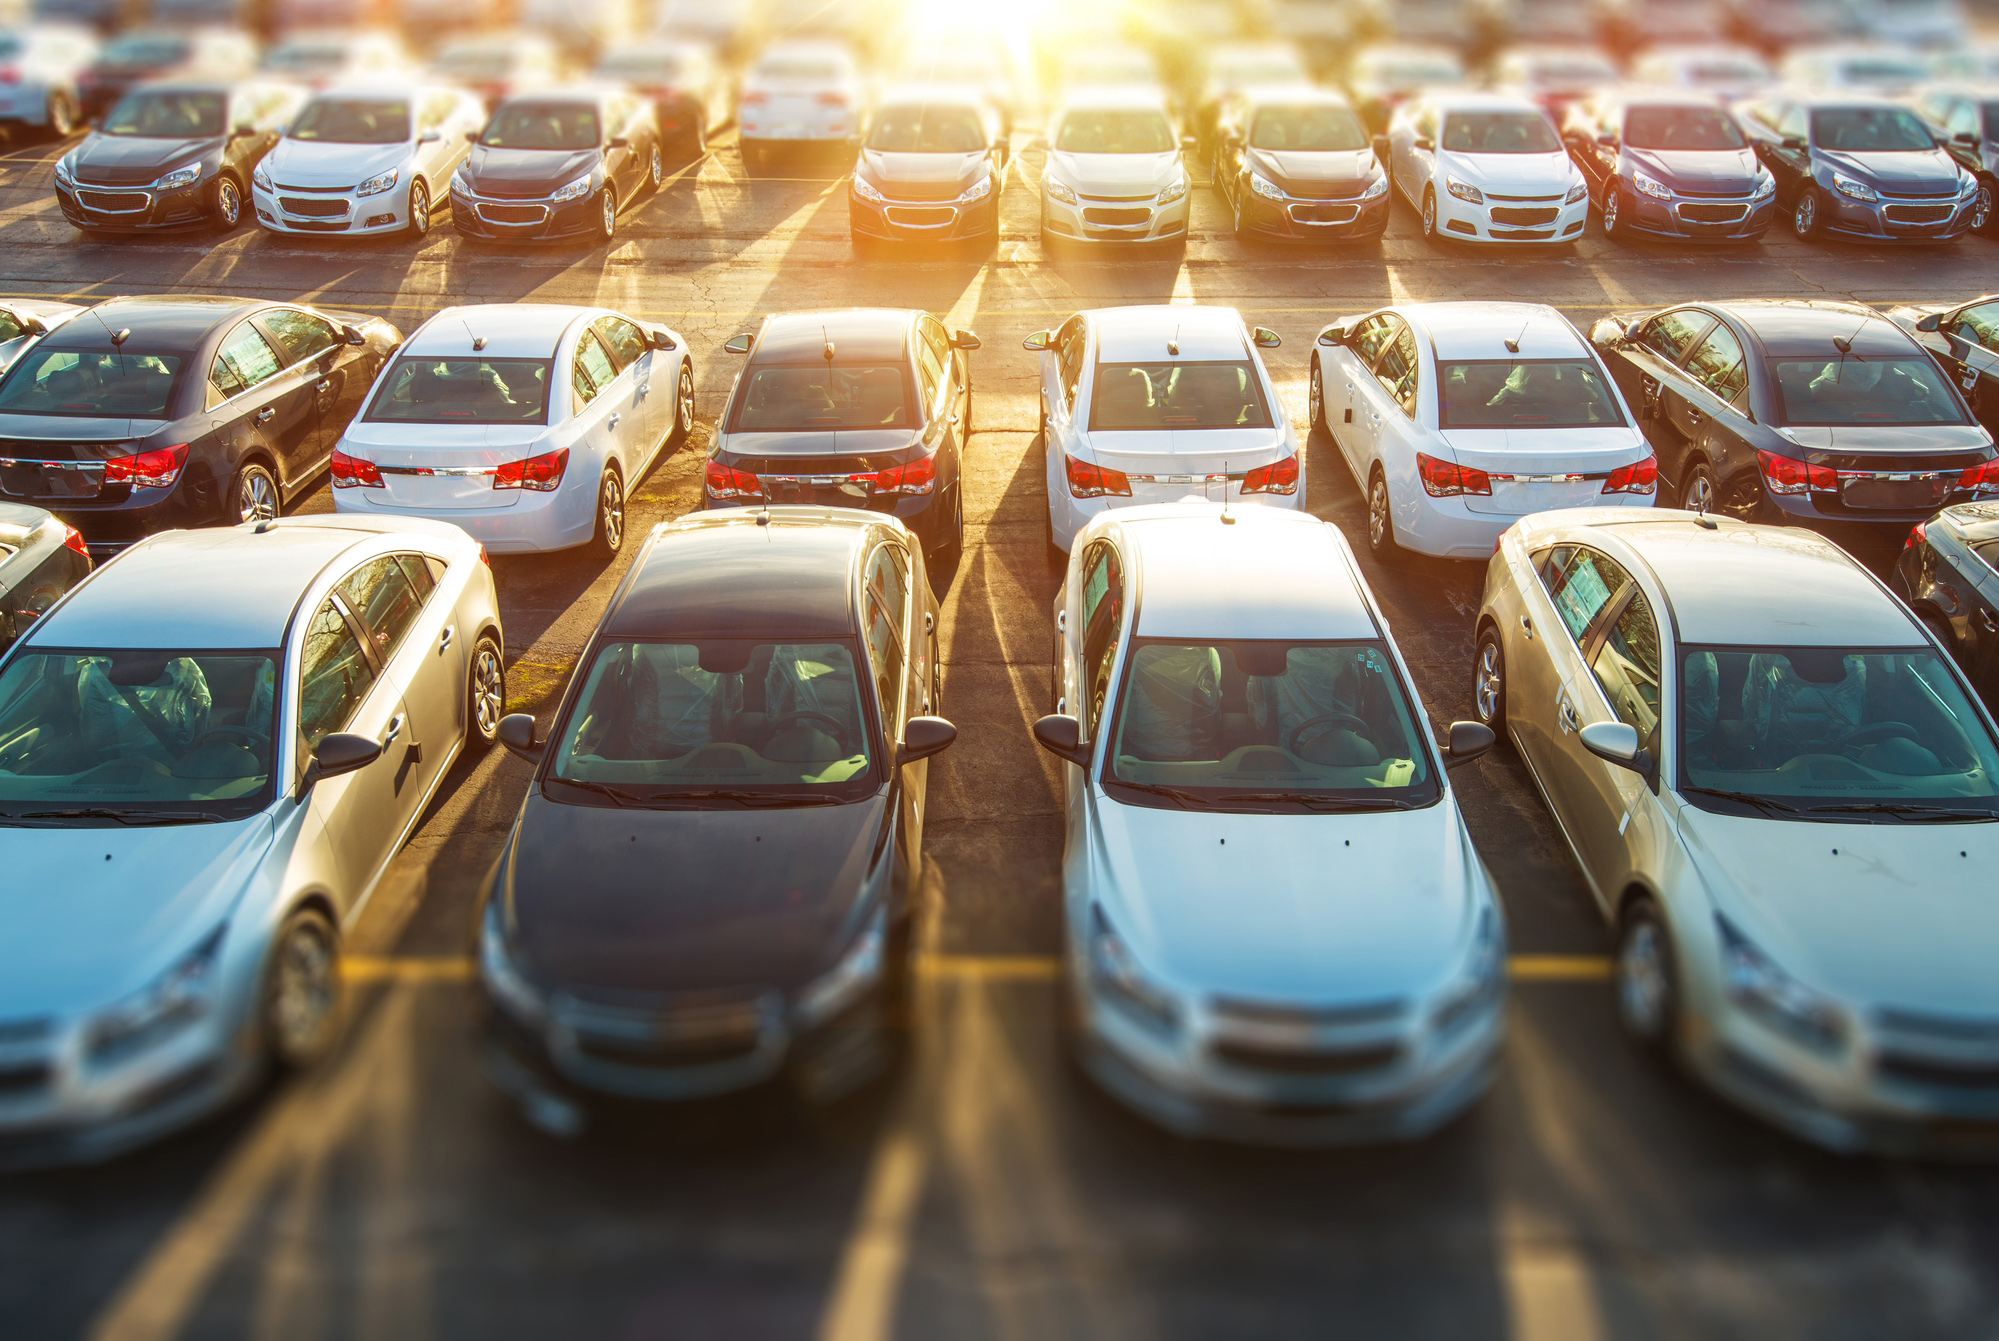 Study Aims to Solve the Parking and Transit Problems at UW